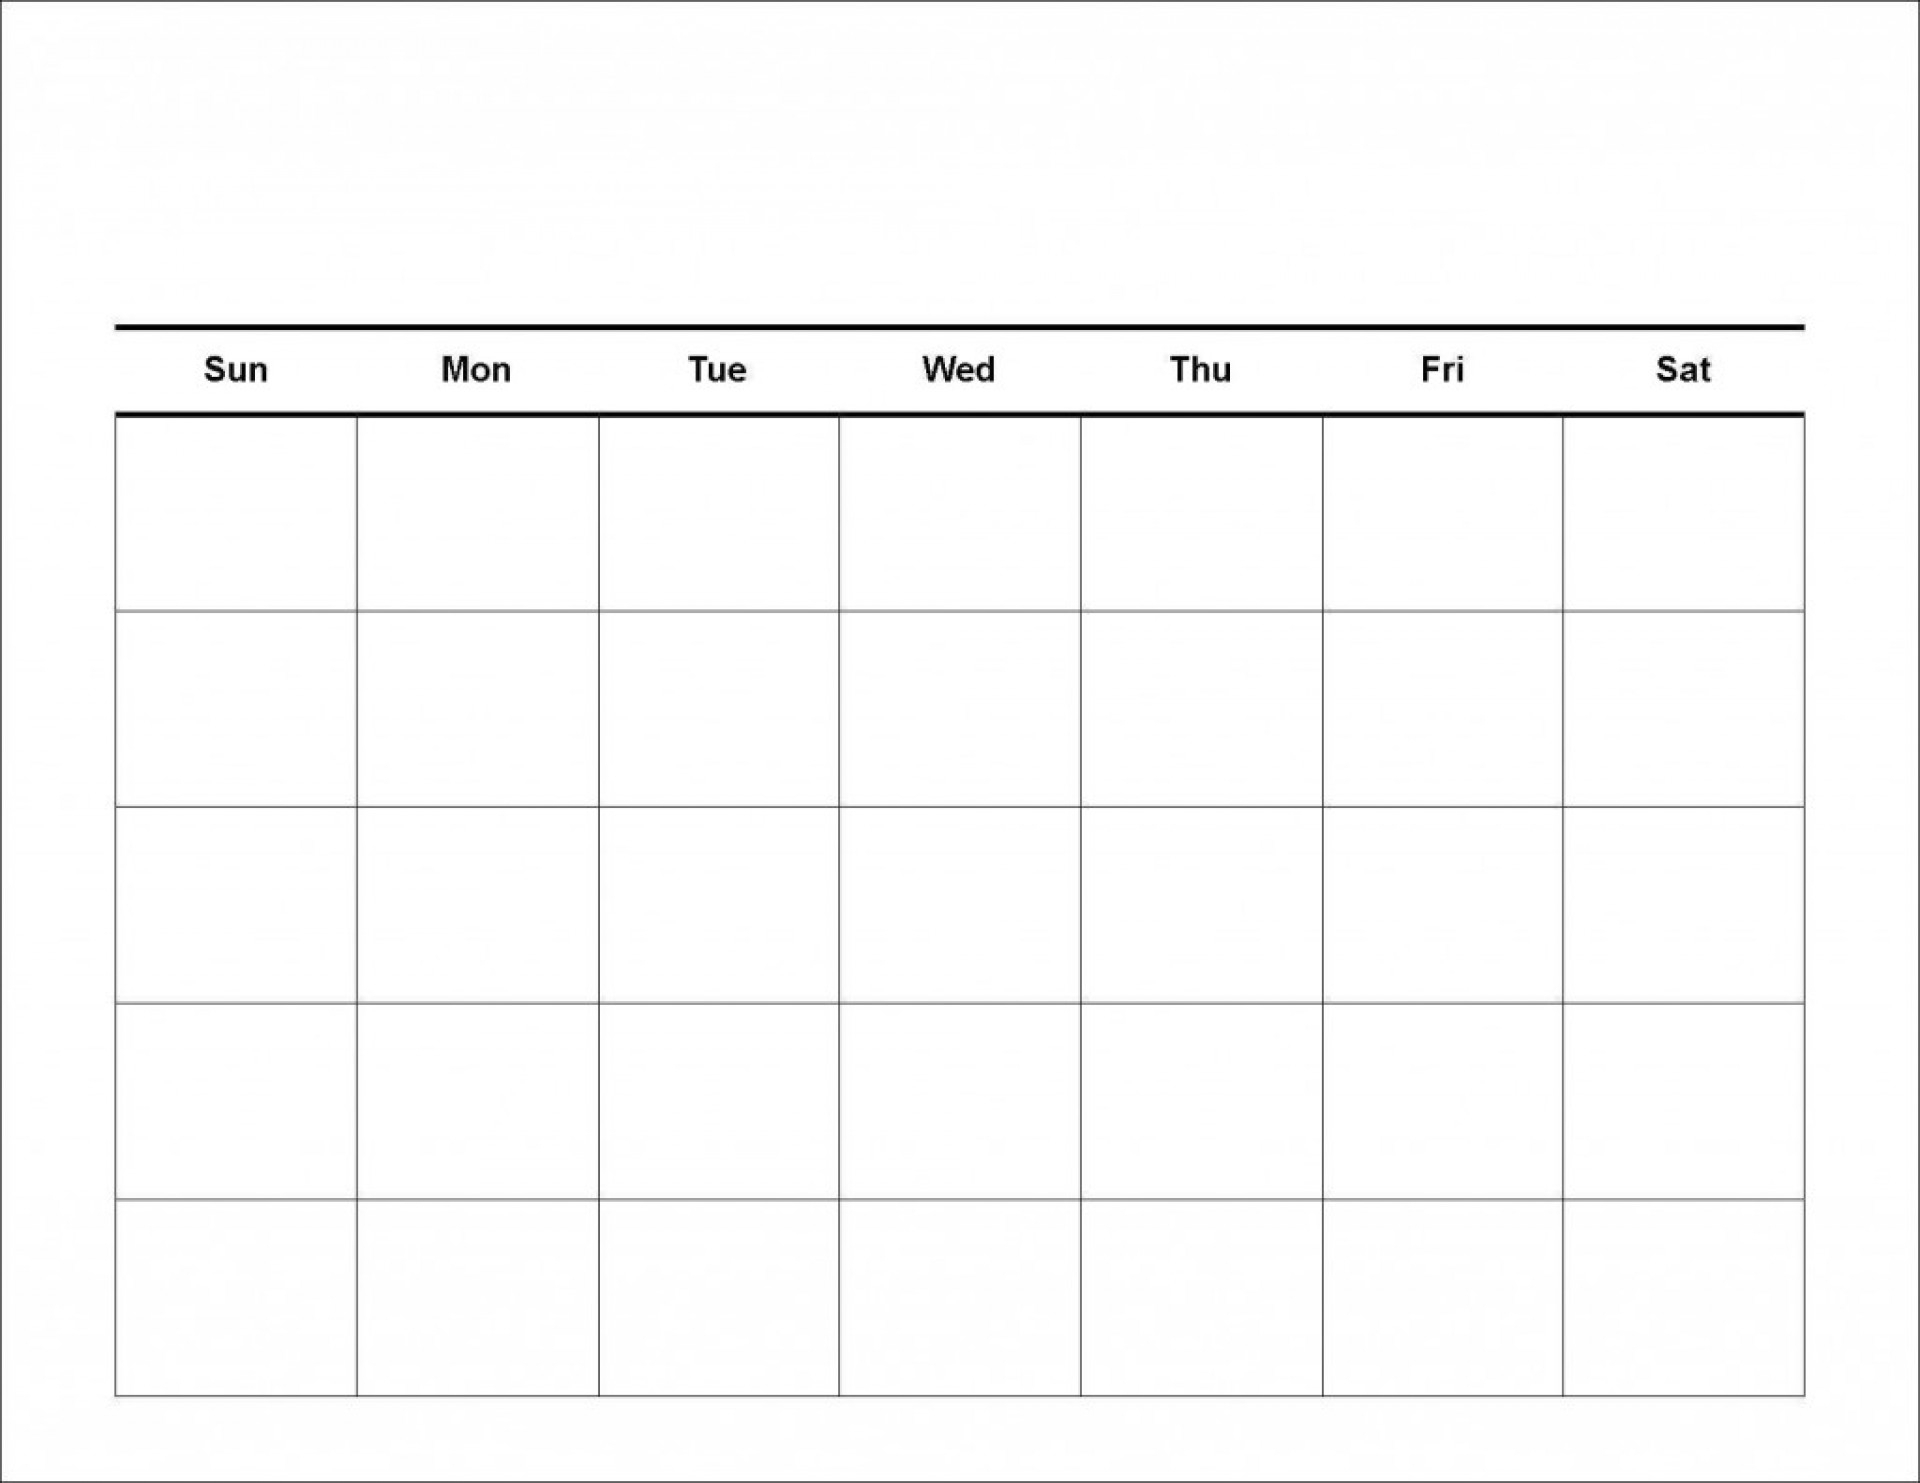 020 Free Blank Calendar Template Ideas 20Blank Weekly Schedule throughout Free Calendar With Time Slots Template